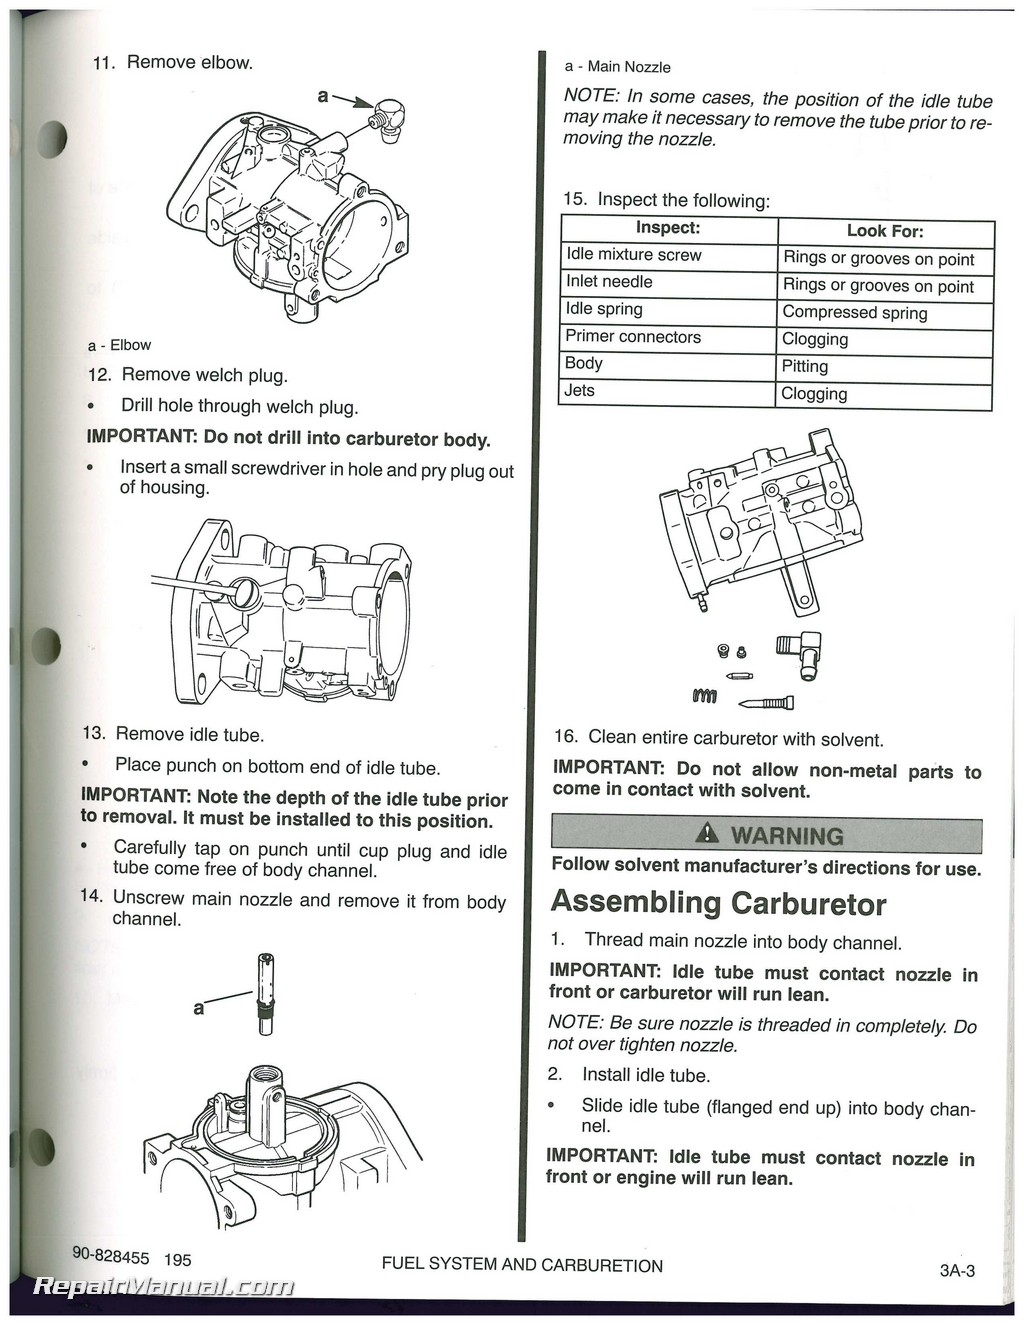 Used 1995 Mercury 90/120 Sport Jet Engine Service Manual